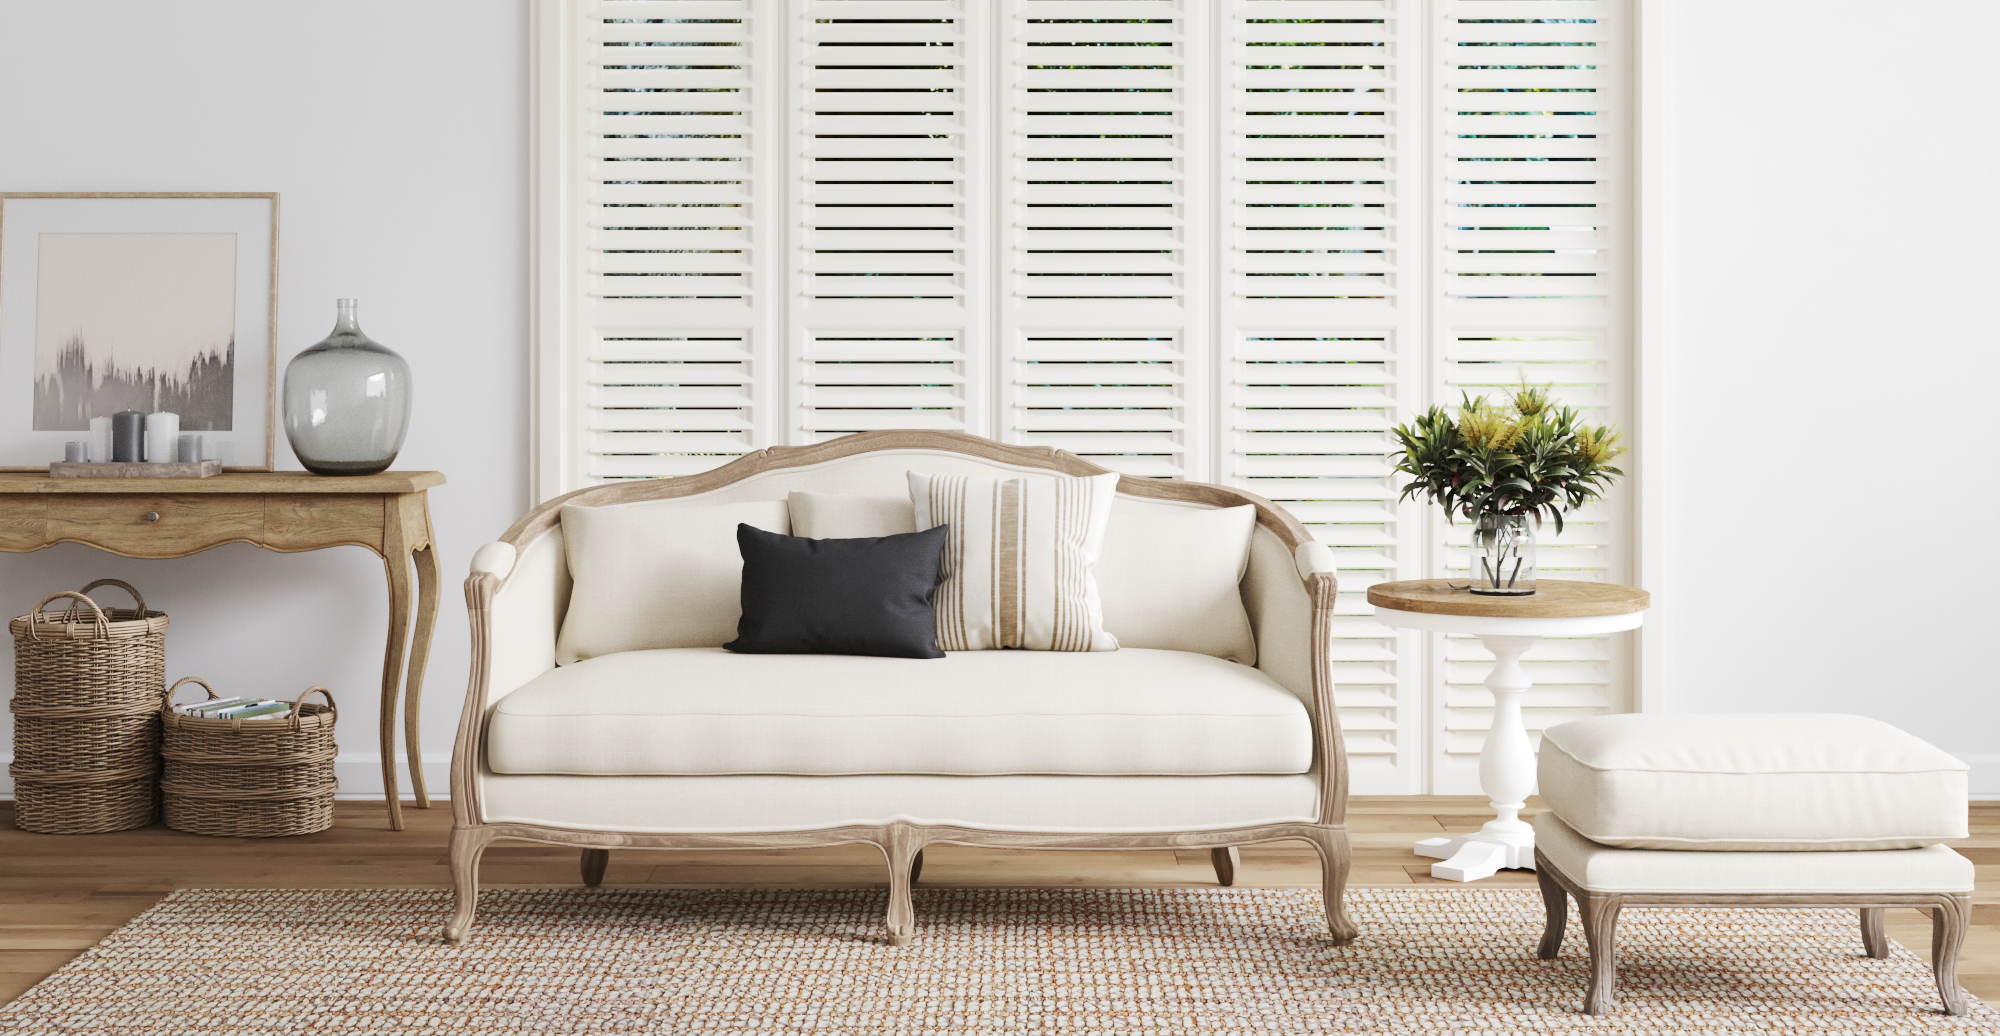 Brosa Provence 3 Seater Sofa styled in French Provincial living room